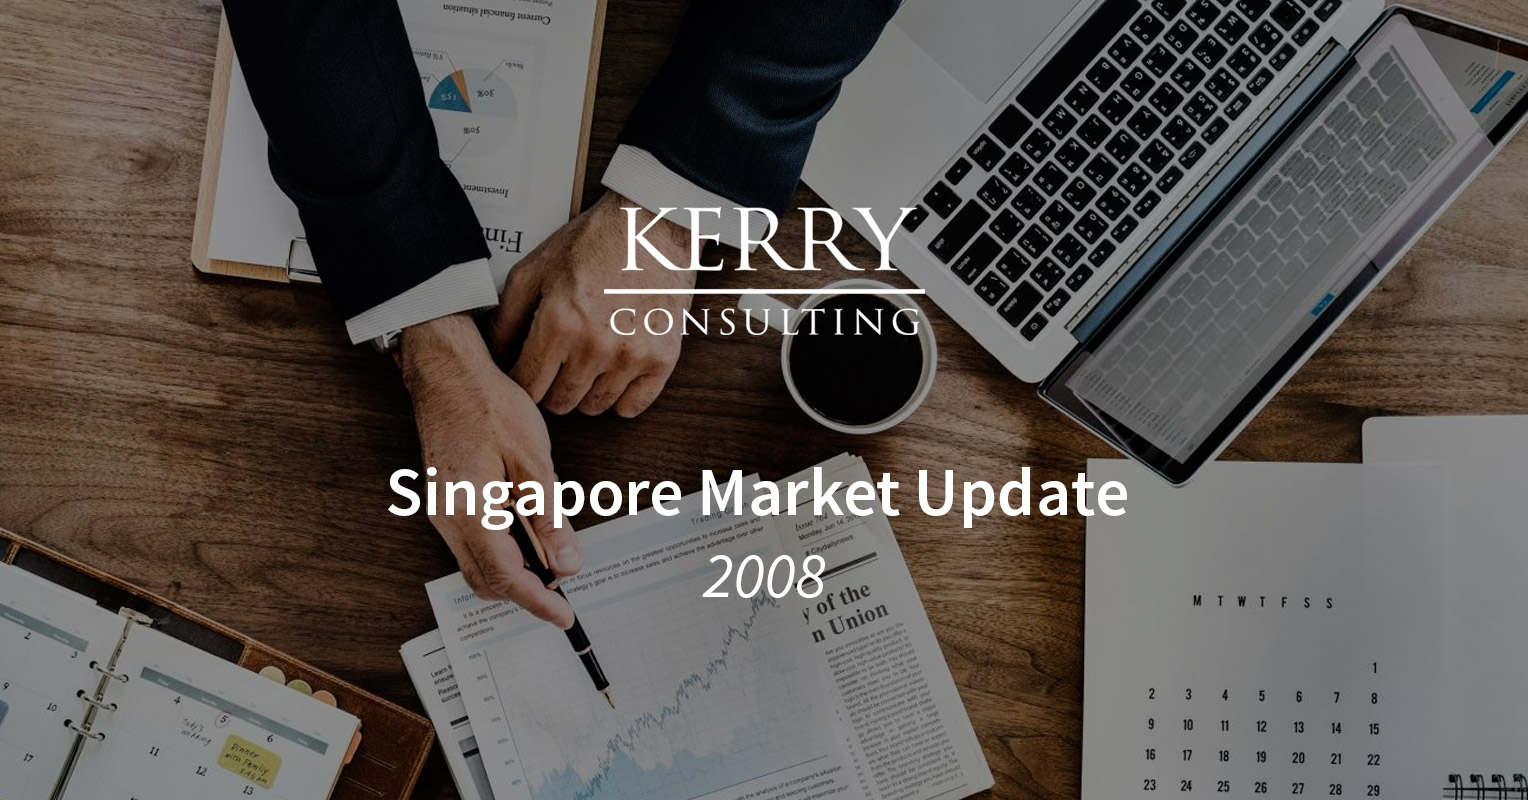 Kerry's Singapore Market Update 2008